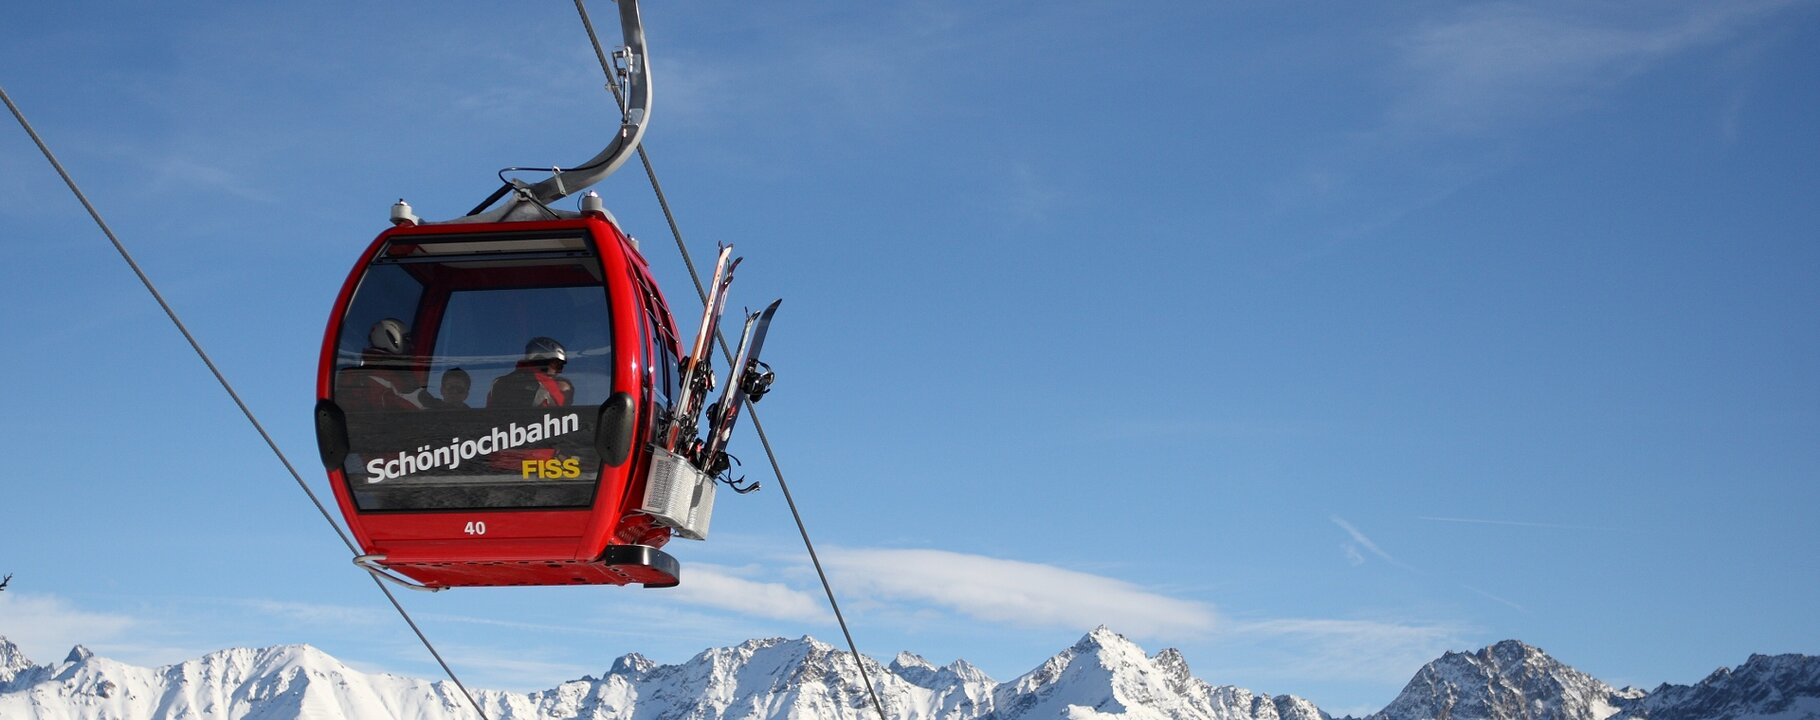 Schönjochbahn cable car Fiss with a magnificent panorama | © Serfaus-Fiss-Ladis/Tirol